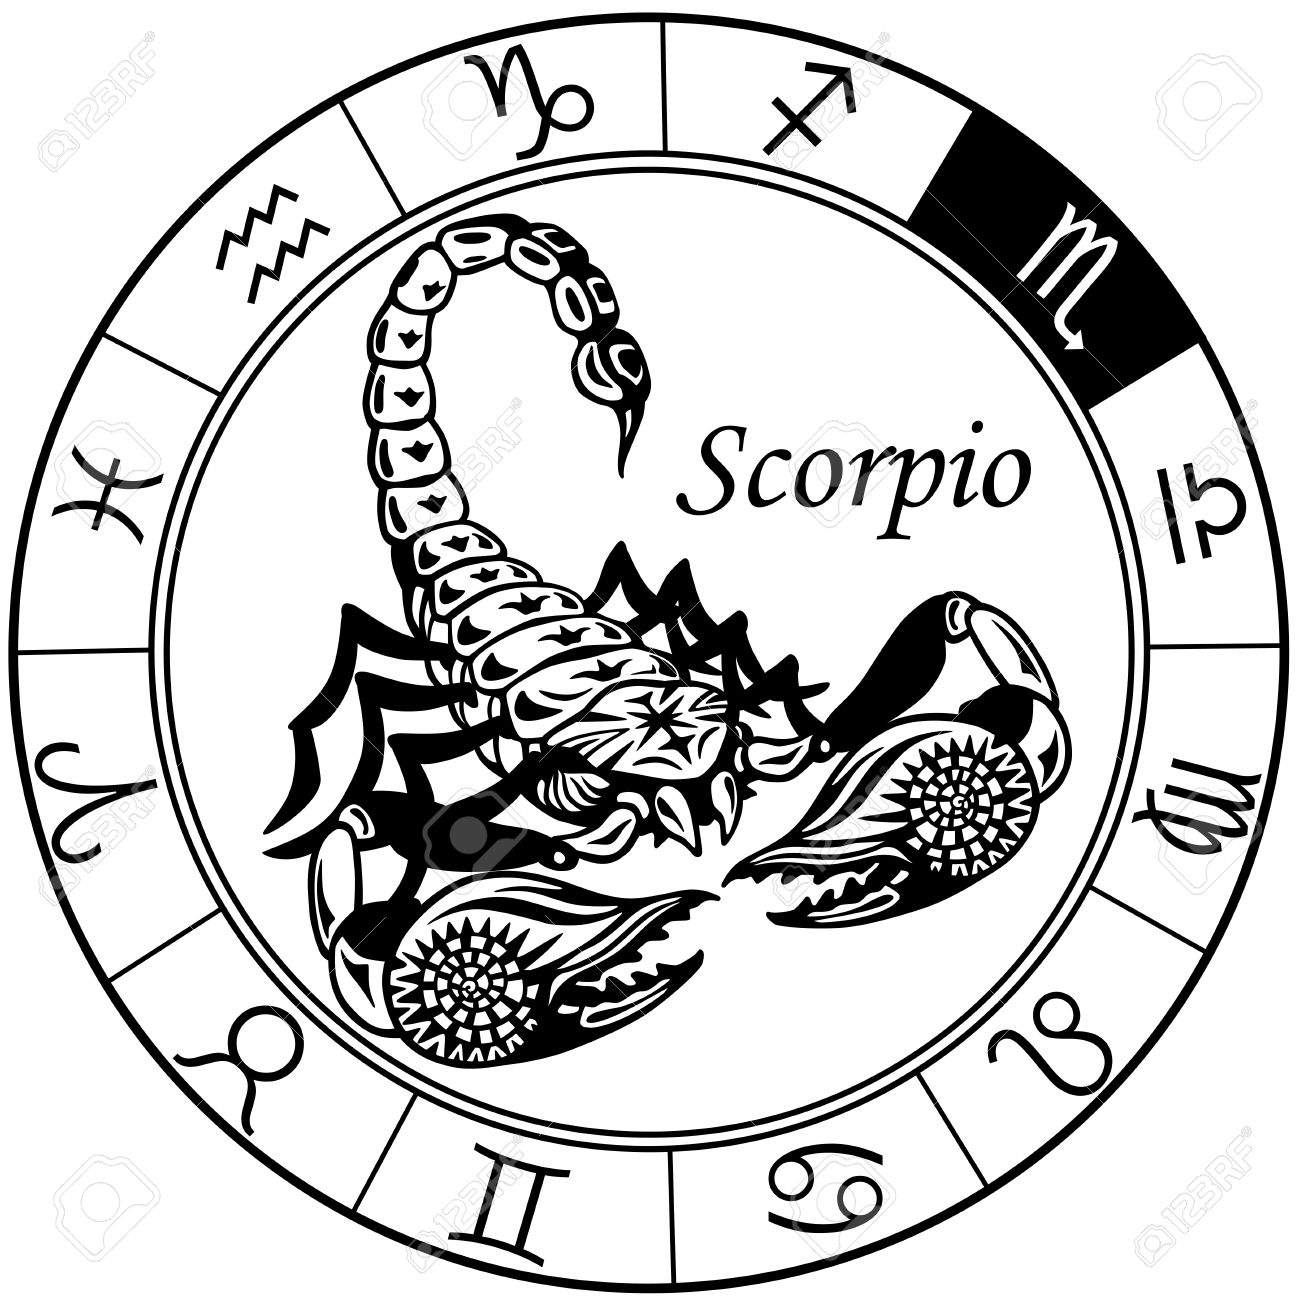 29493614-scorpion-or-scorpio-astrological-zodiac-sign-black-and-white-tattoo-image-stock-vector